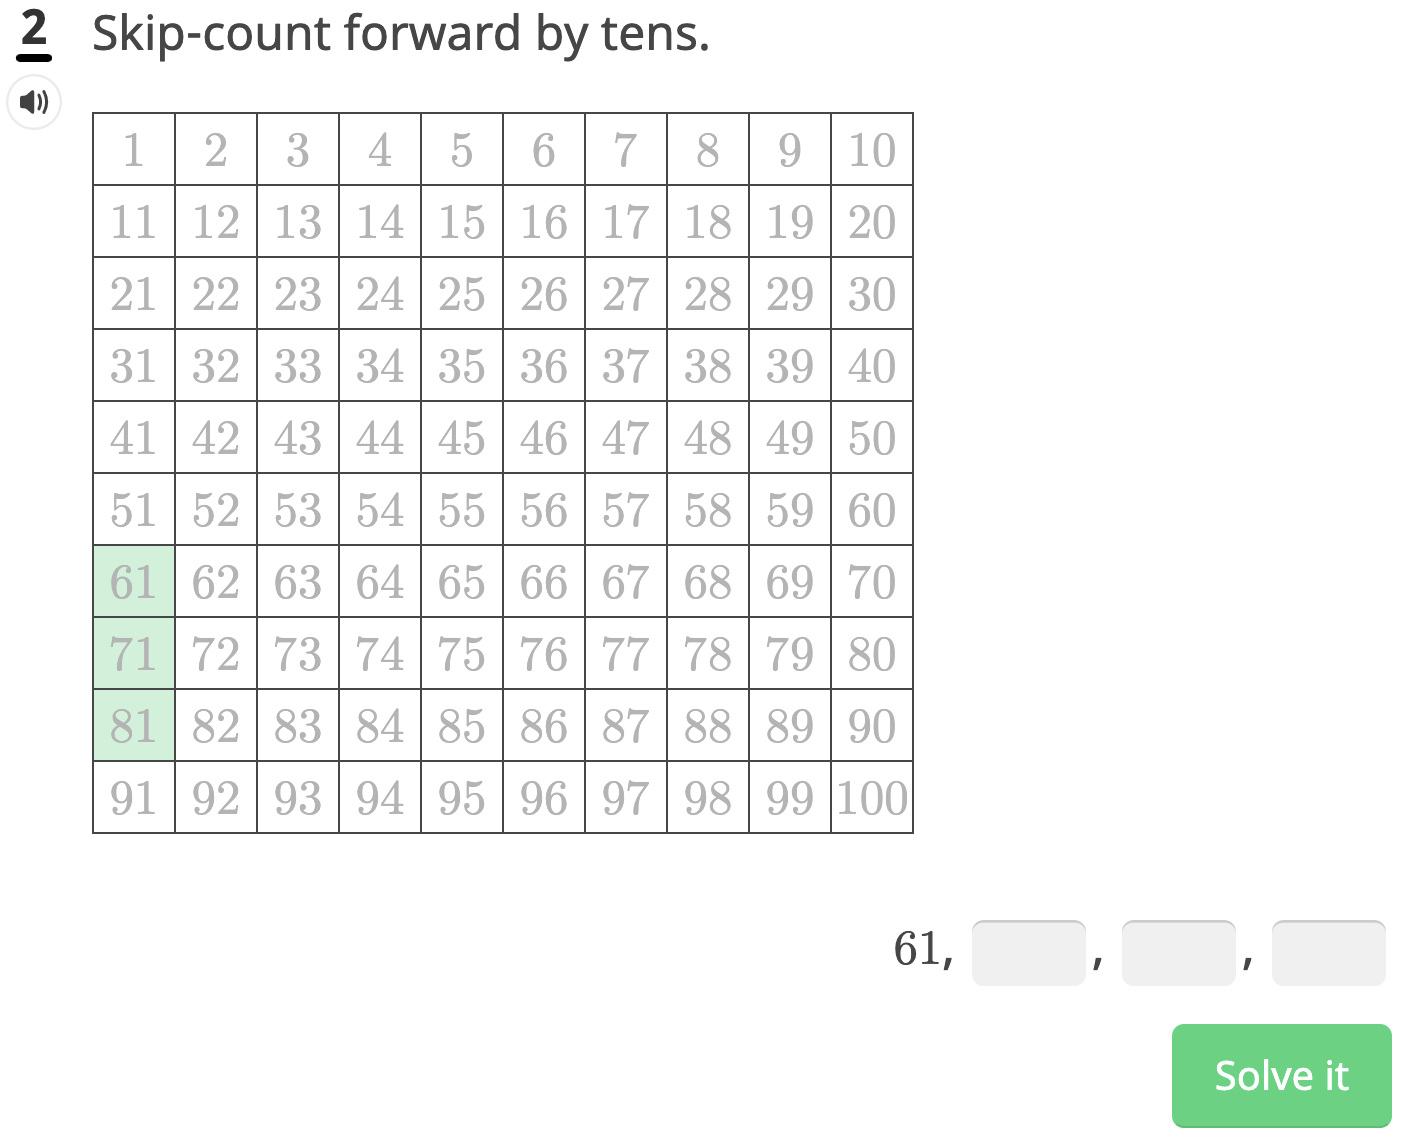 Sample problem showing number chart problems. Specifically, in this question, using the number chart to skip-count forward by 10's from 61.